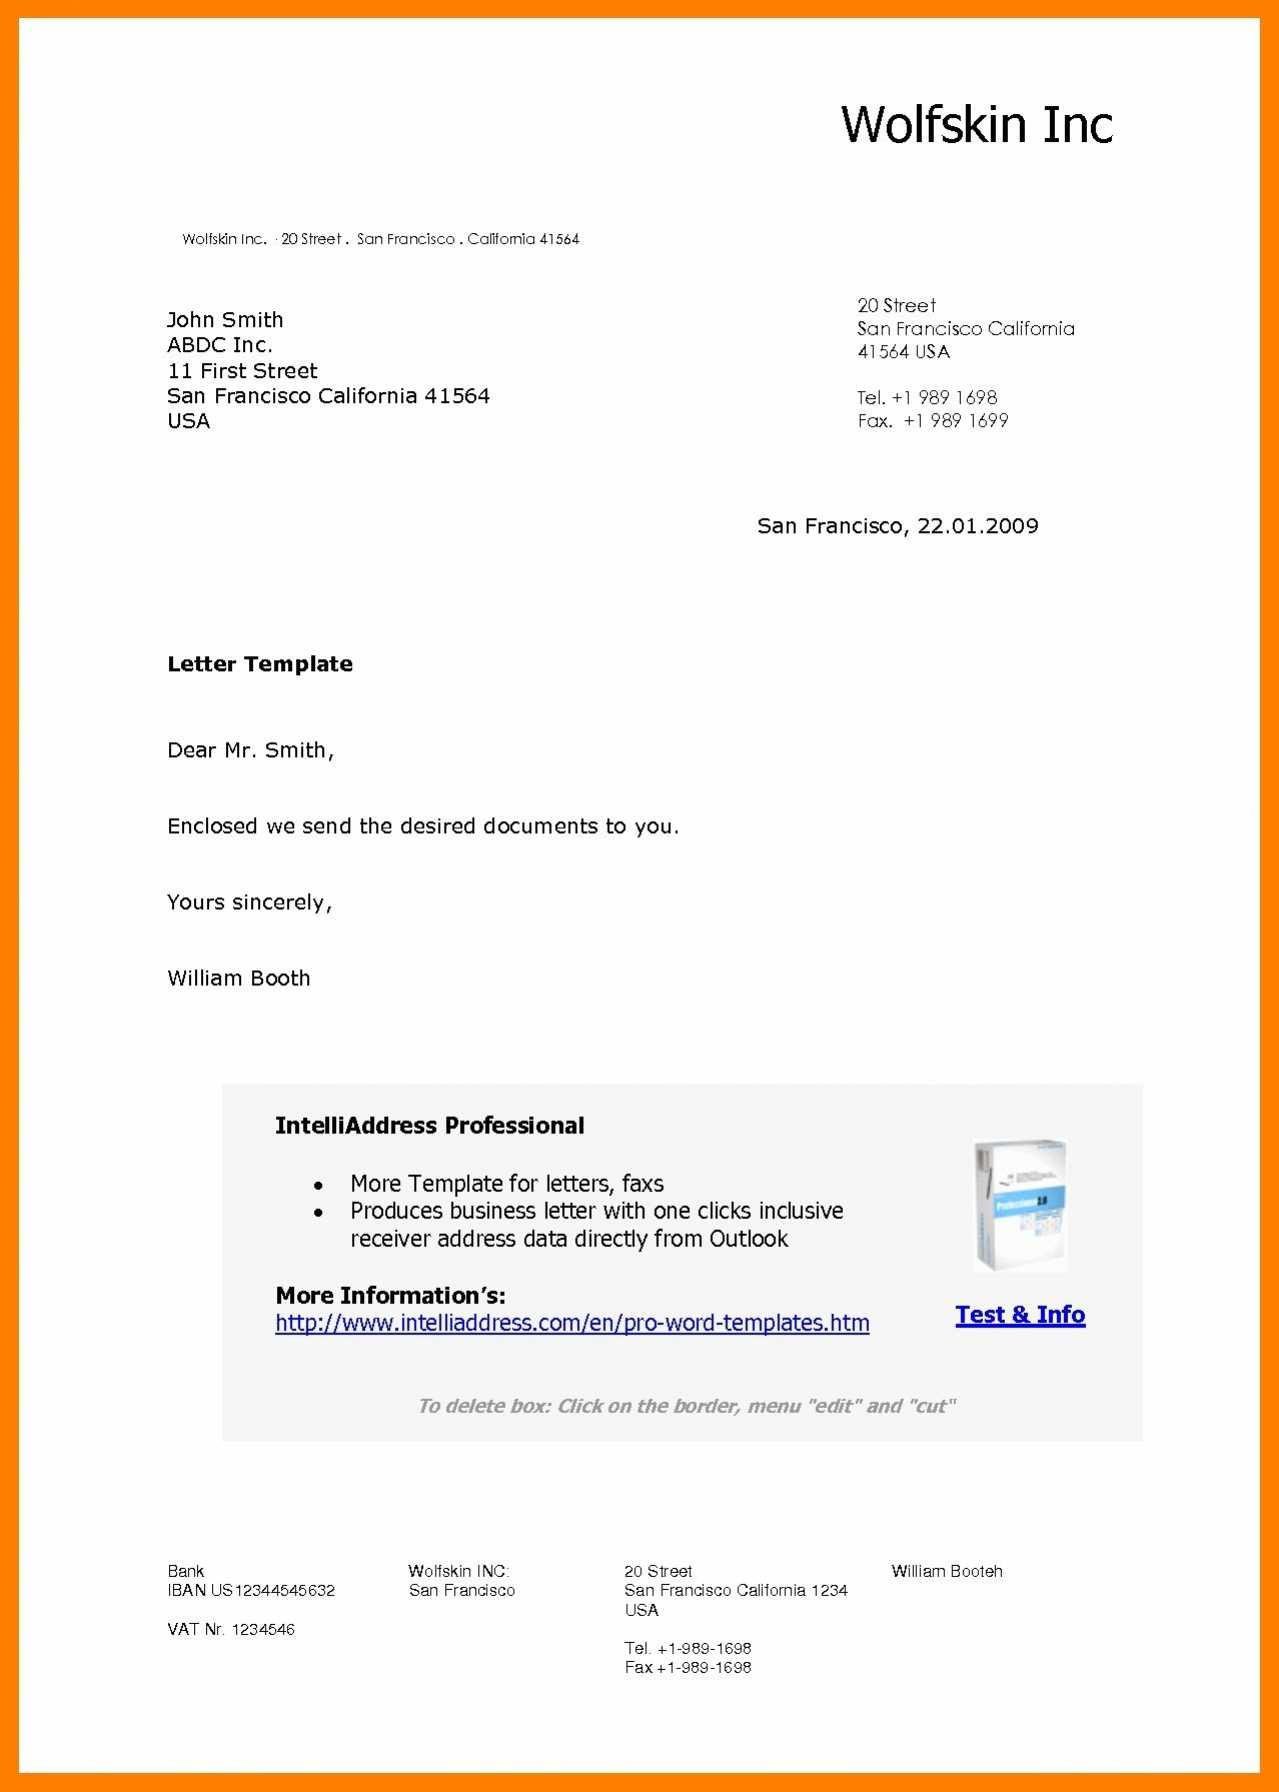 letter from santa free template word beautiful free cover letter template word